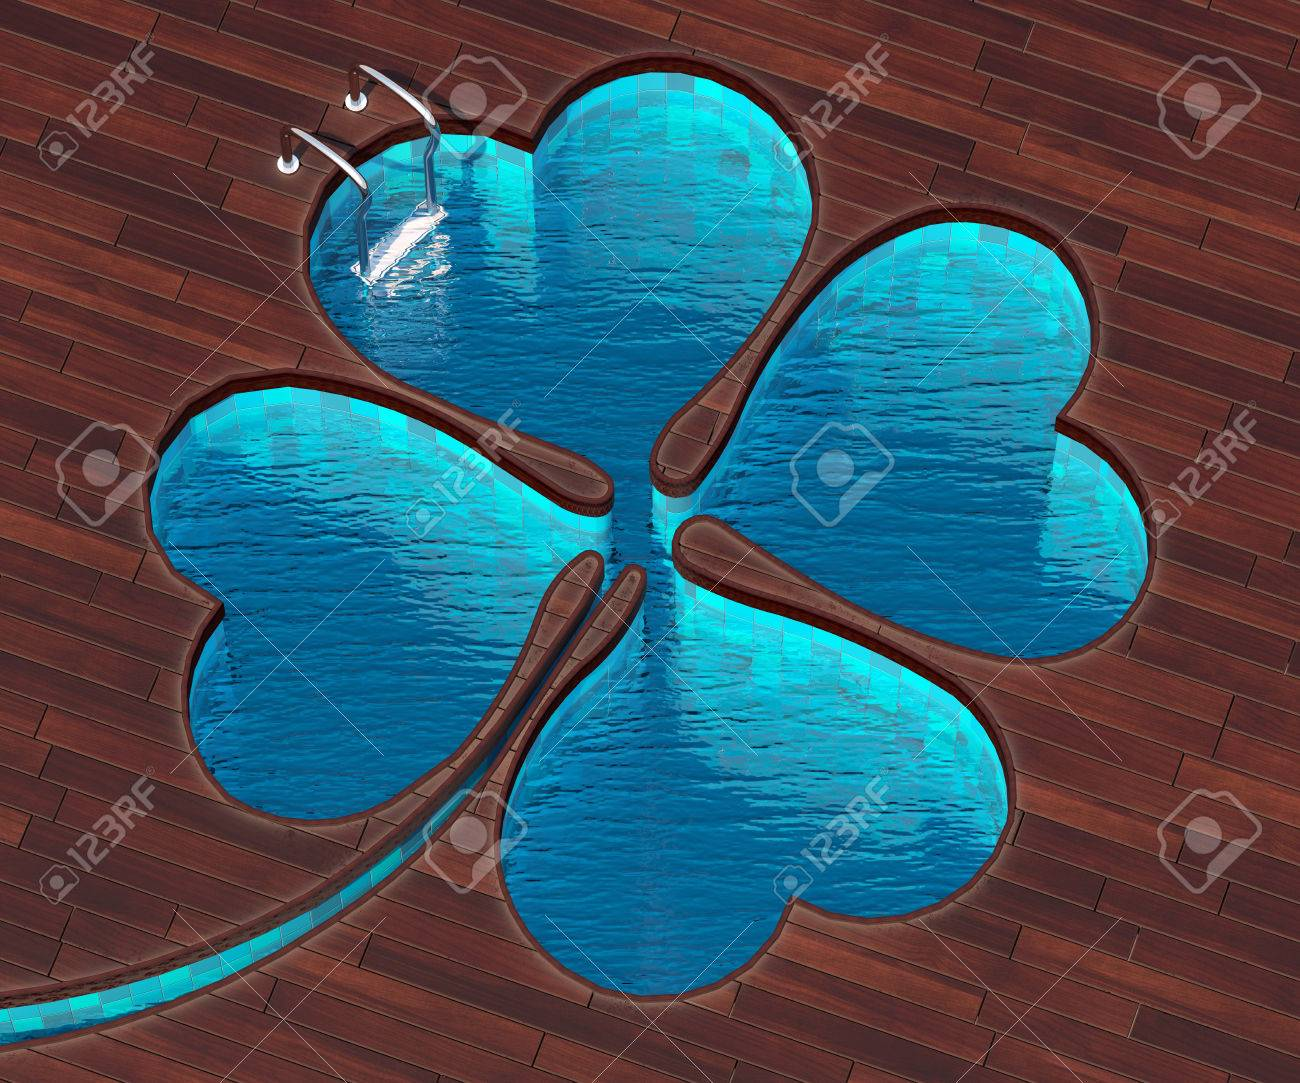 The Picture Combines The Icon Clover And A Cool Pool Swimming Stock Photo Picture And Royalty Free Image Image 53331749